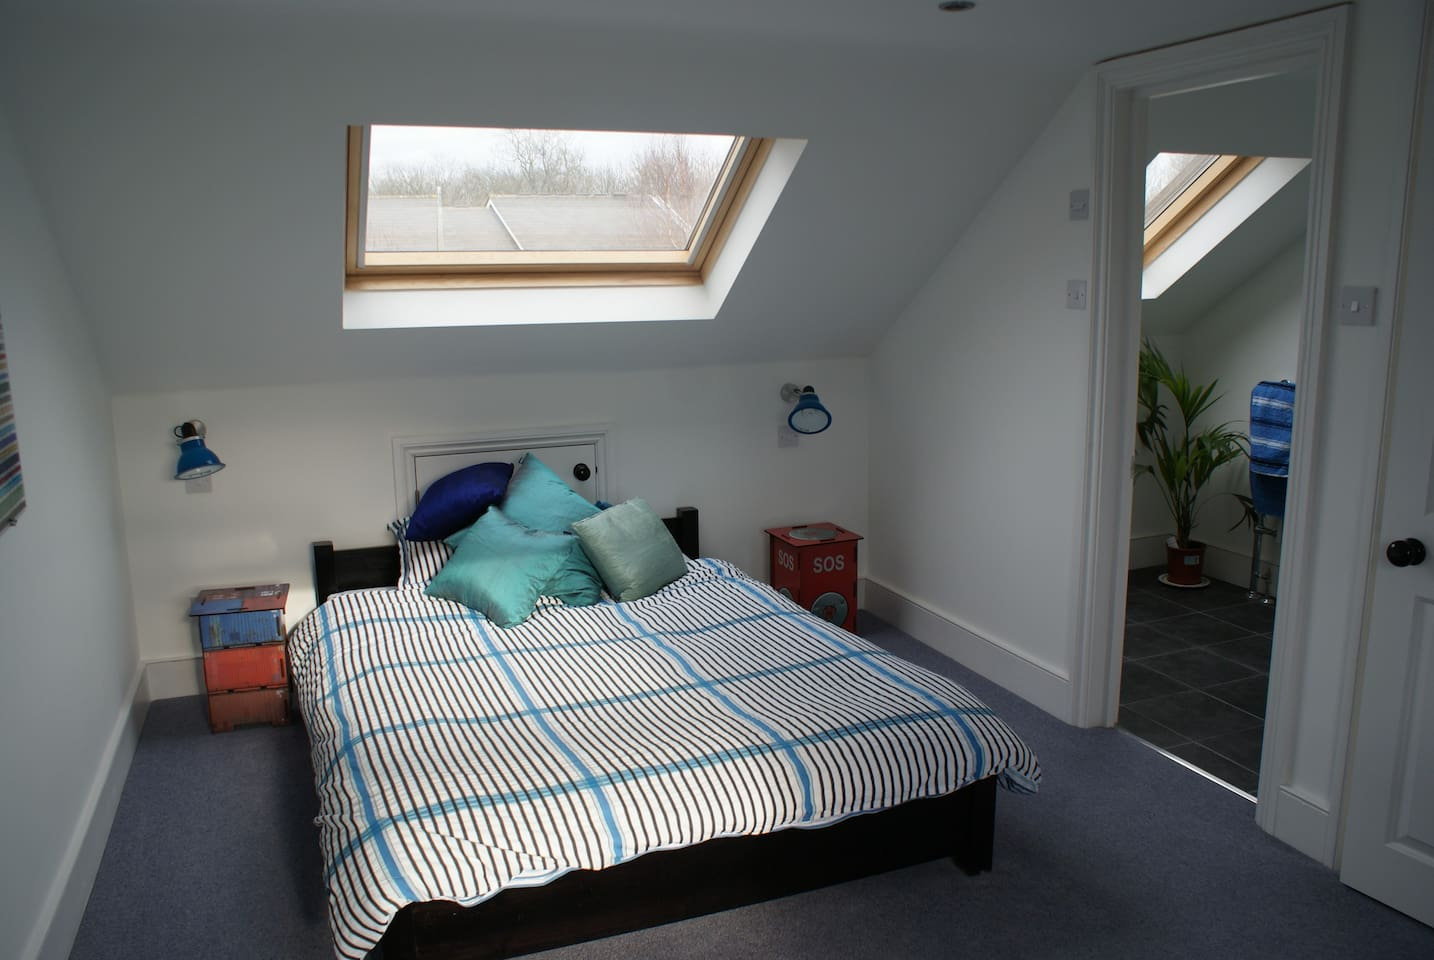 Spacious double bedroom with view of ensuite bathroom